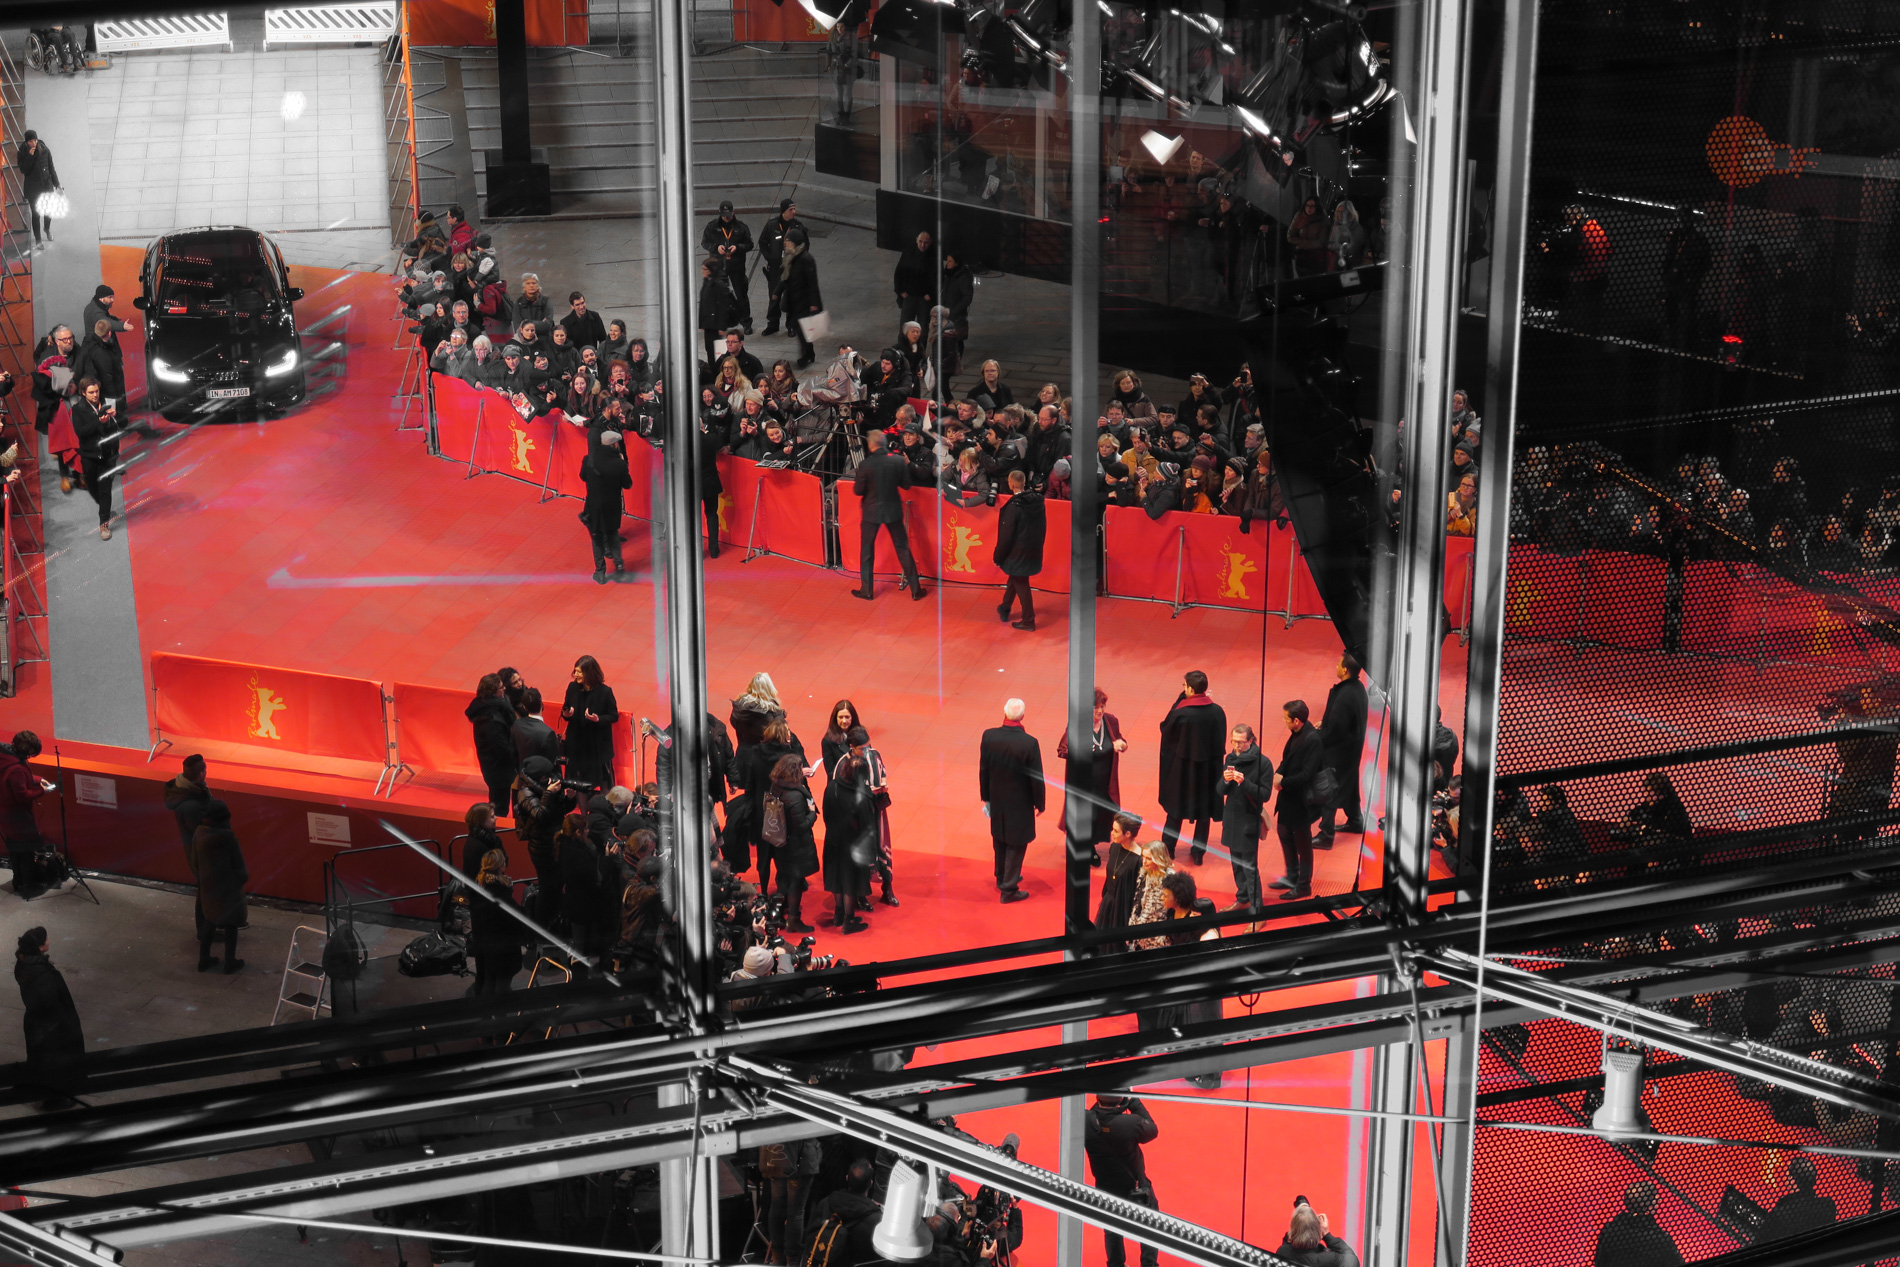 berlinale, berlin, canon, film festival, festspiele, fashionblogger, lifestyleblog, modeblogger, outfit, look, canon powershot g5x, roter teppich